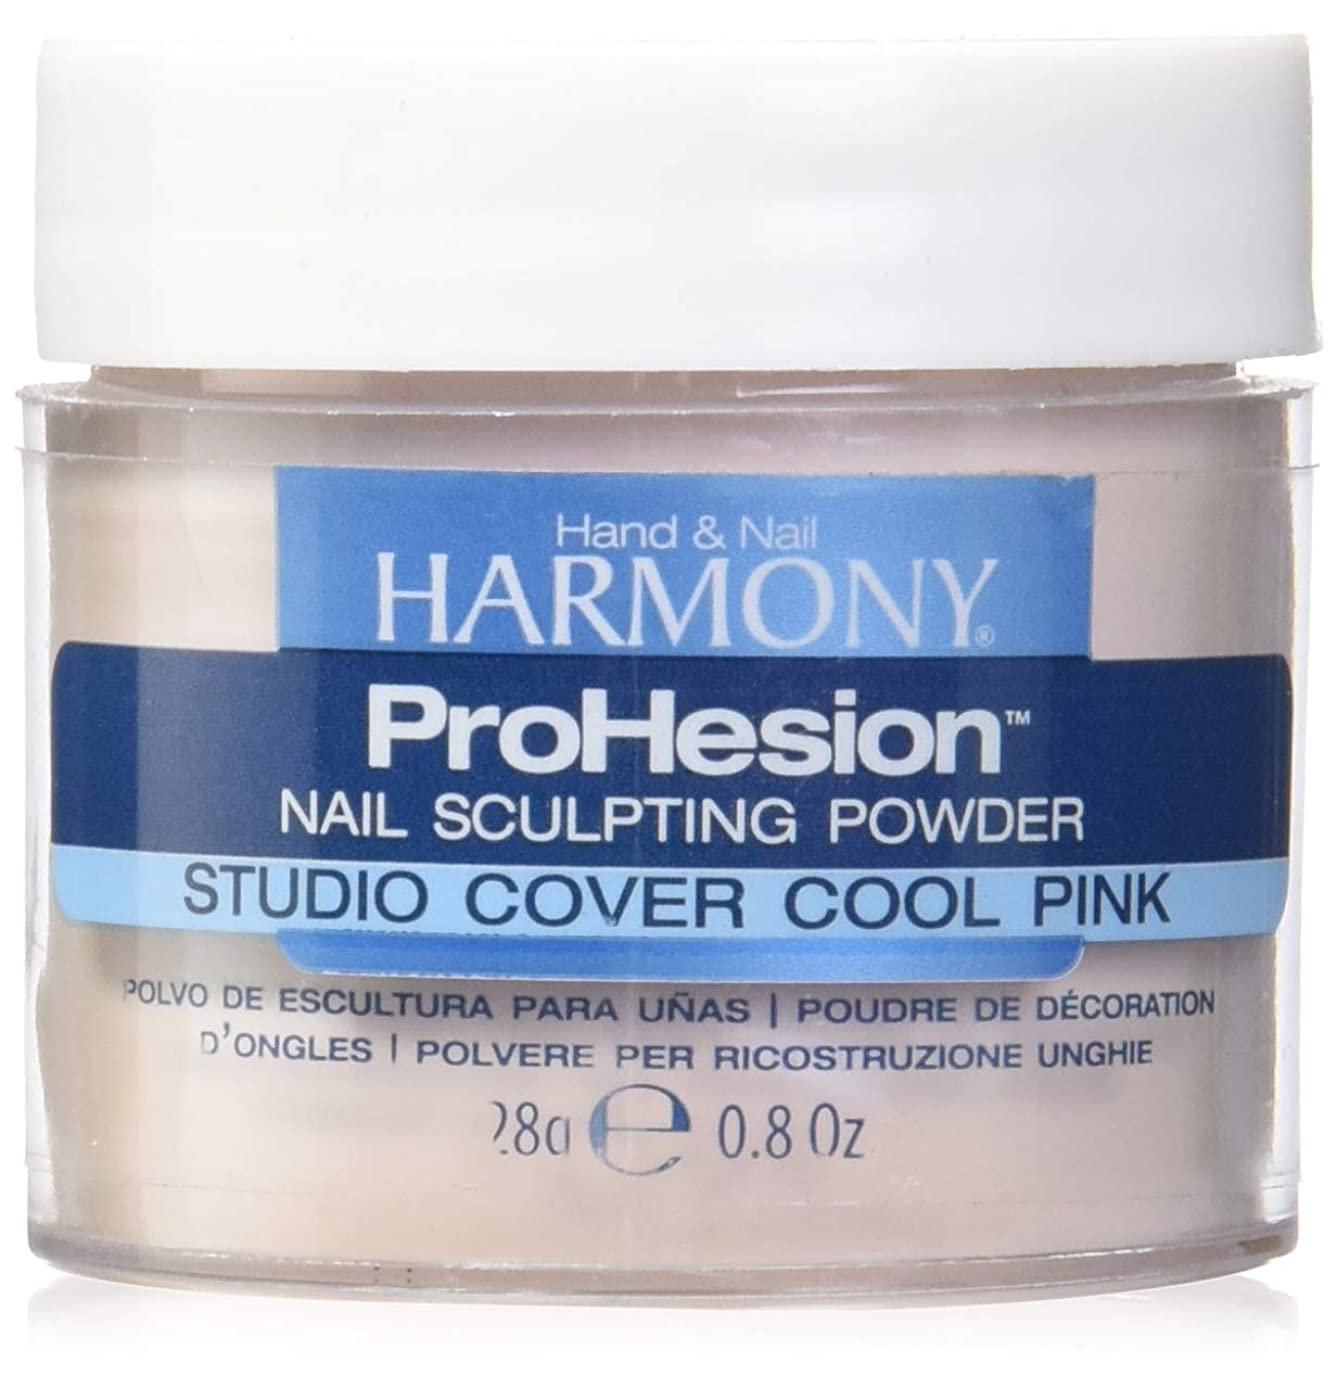 裂け目アグネスグレイ逆にHarmony Prohesion Sculpting Powder - Studio Cover Cool Pink - 0.8oz / 28g